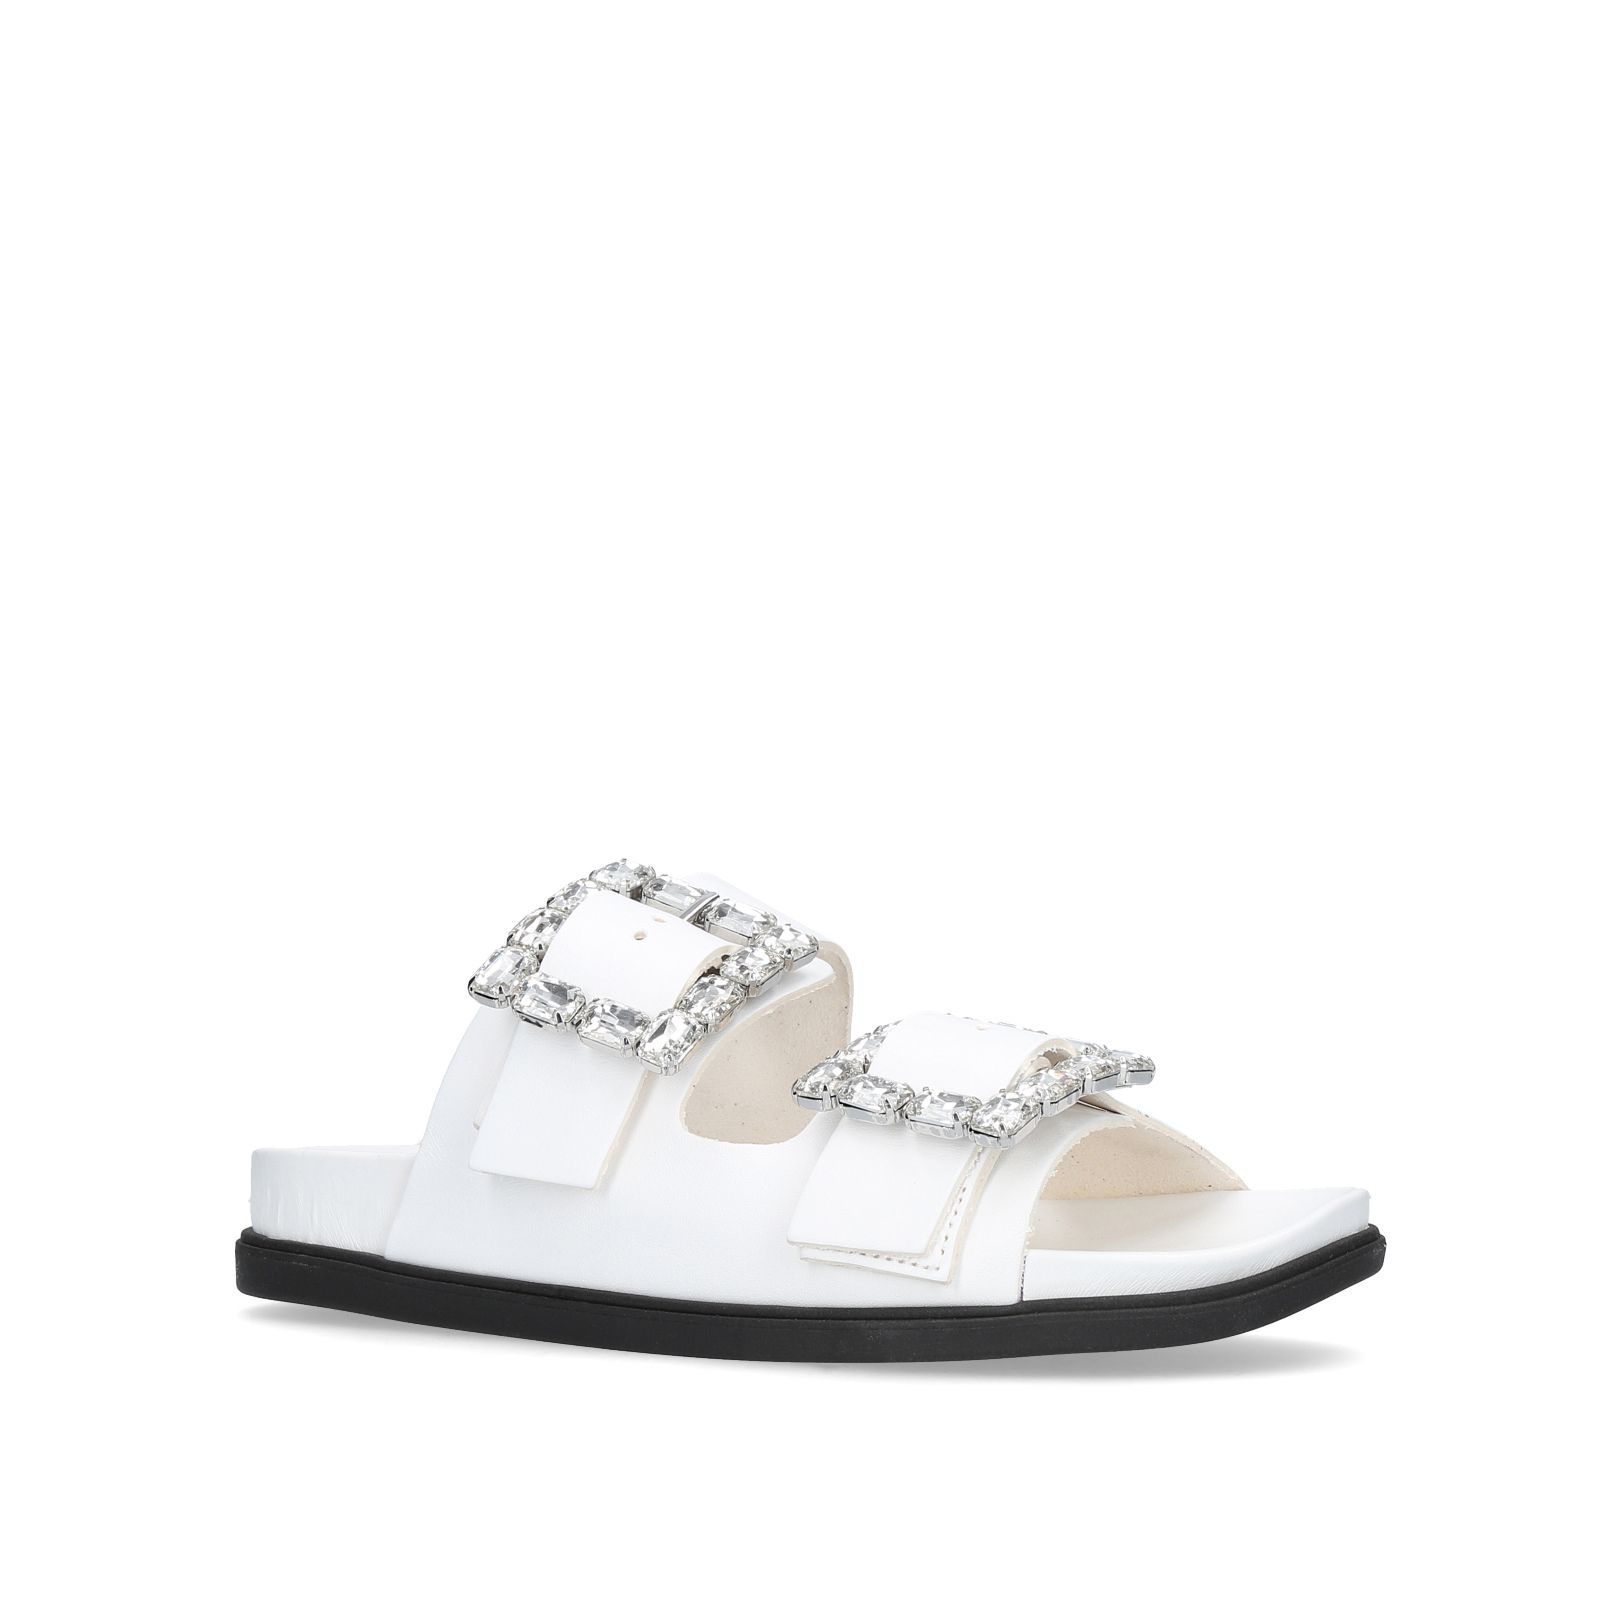 Carvela Mk Flex Mid Pump Courts, White